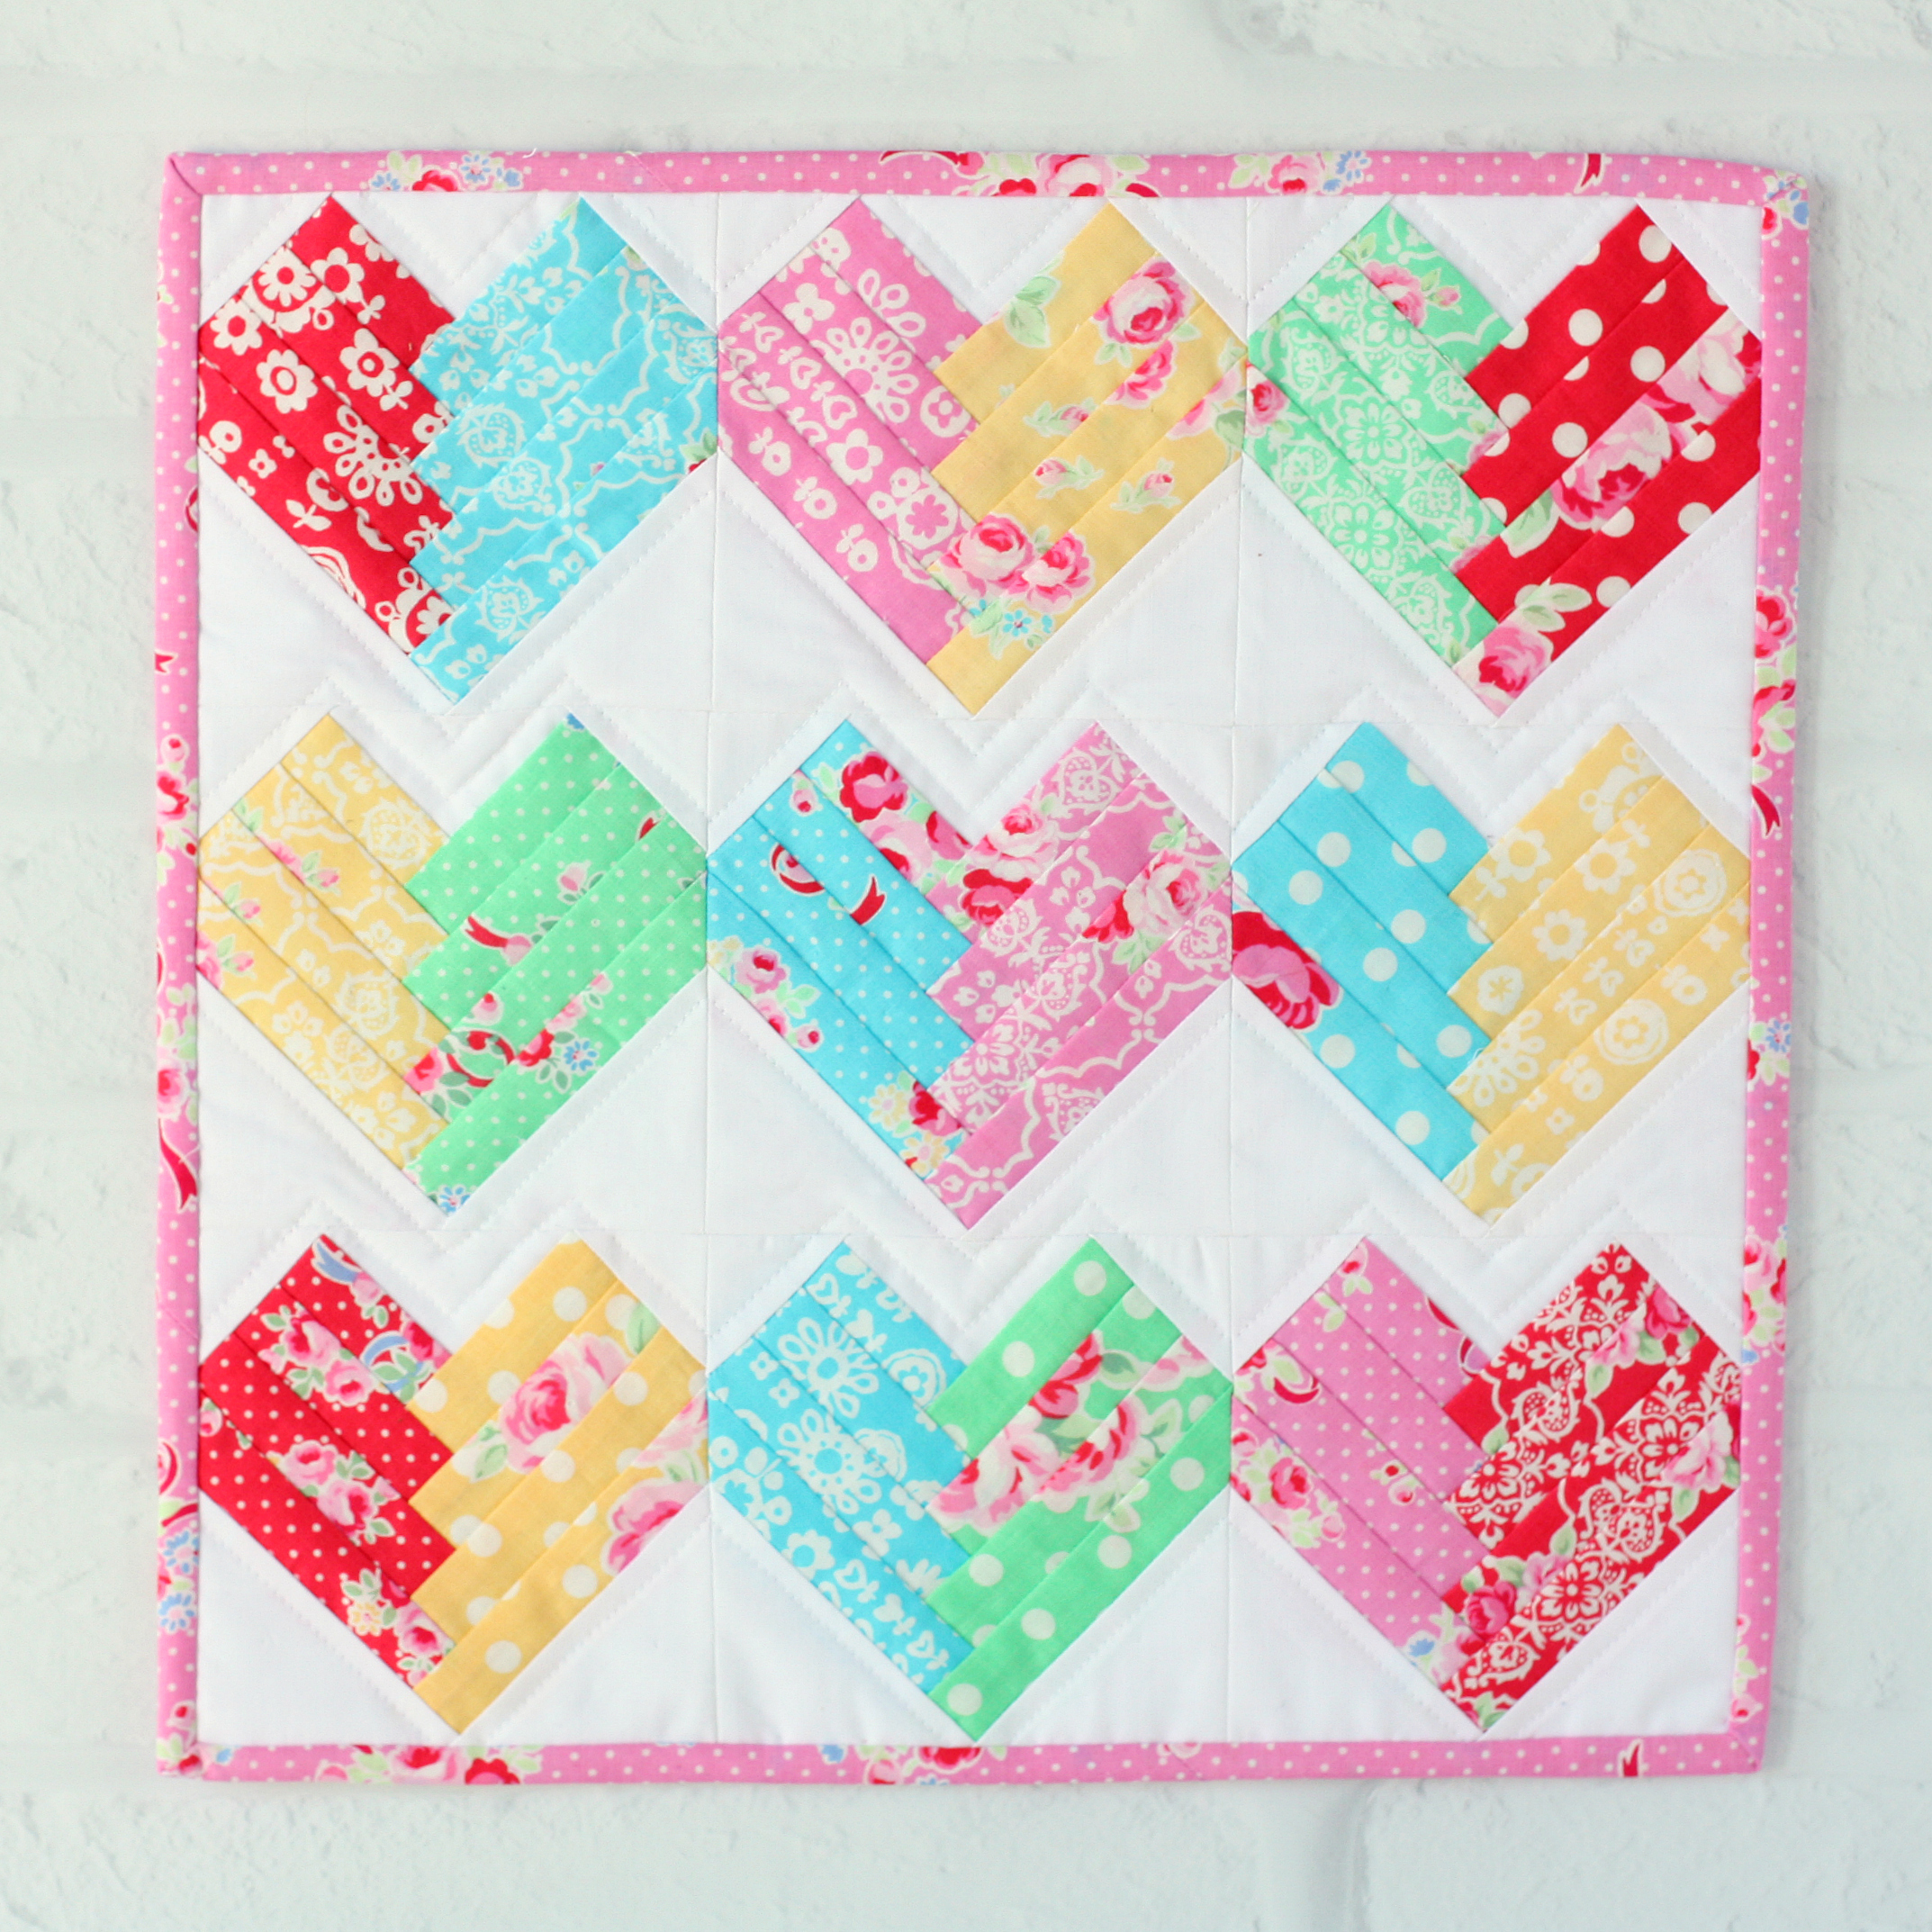 Mini Quilt Block Template Set : Heart of the Home Mini Quilt - A Spoonful of Sugar